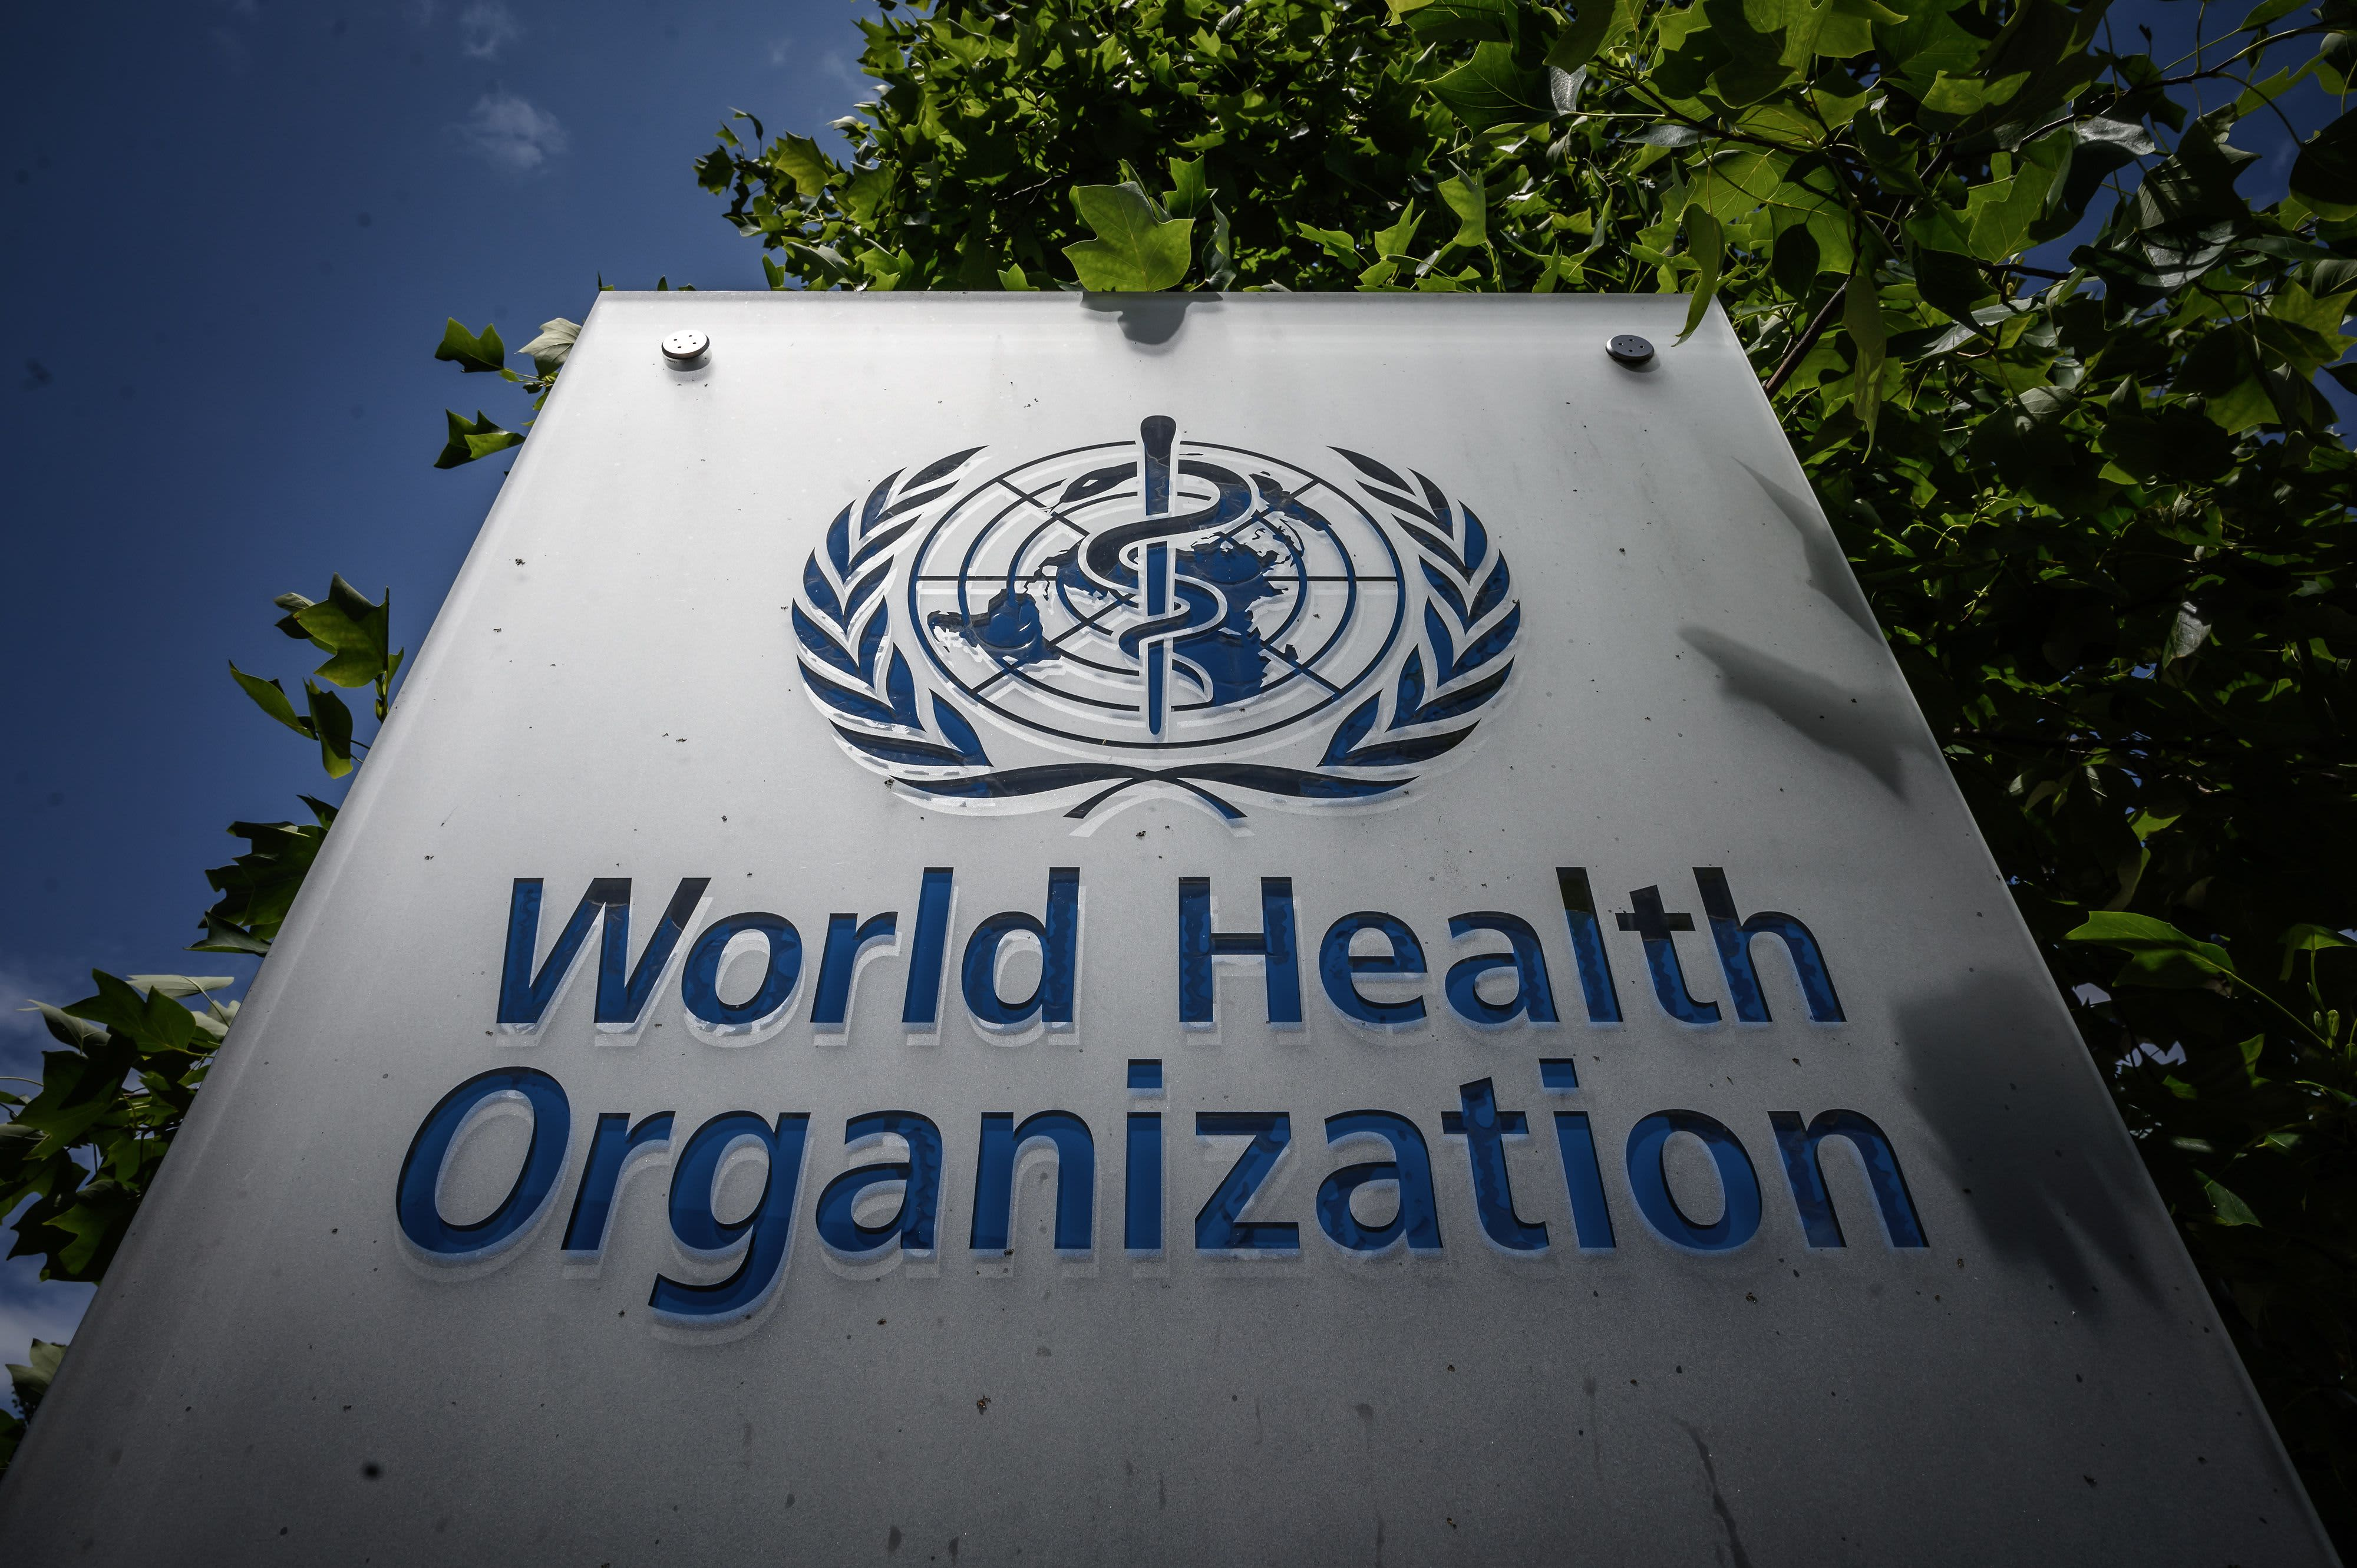 Watch live: World Health Organization holds Q&A on the coronavirus outbreak - CNBC